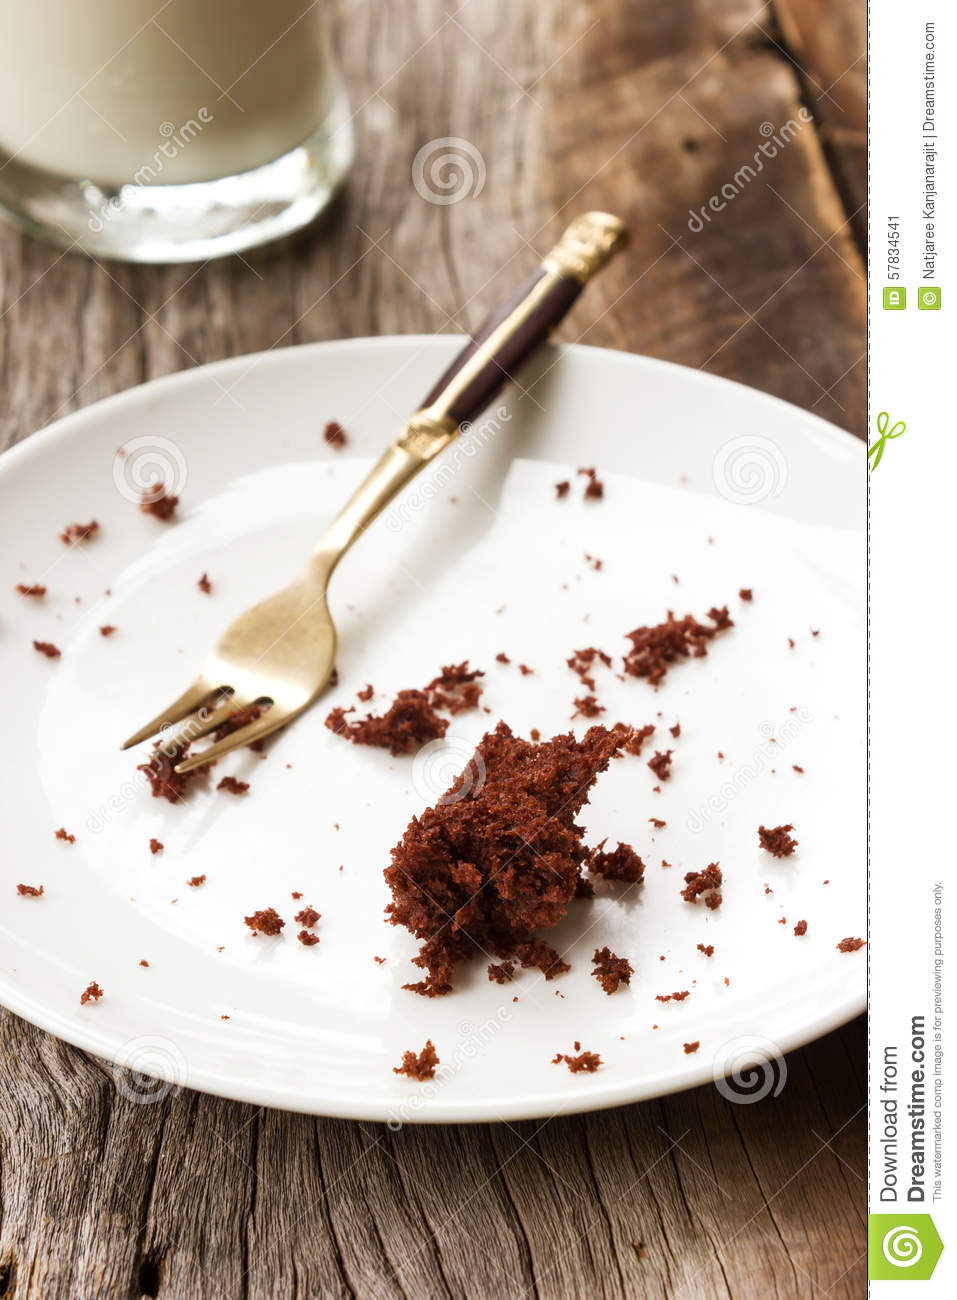 Dirty Empty Plate On Wooden Background Stock Image